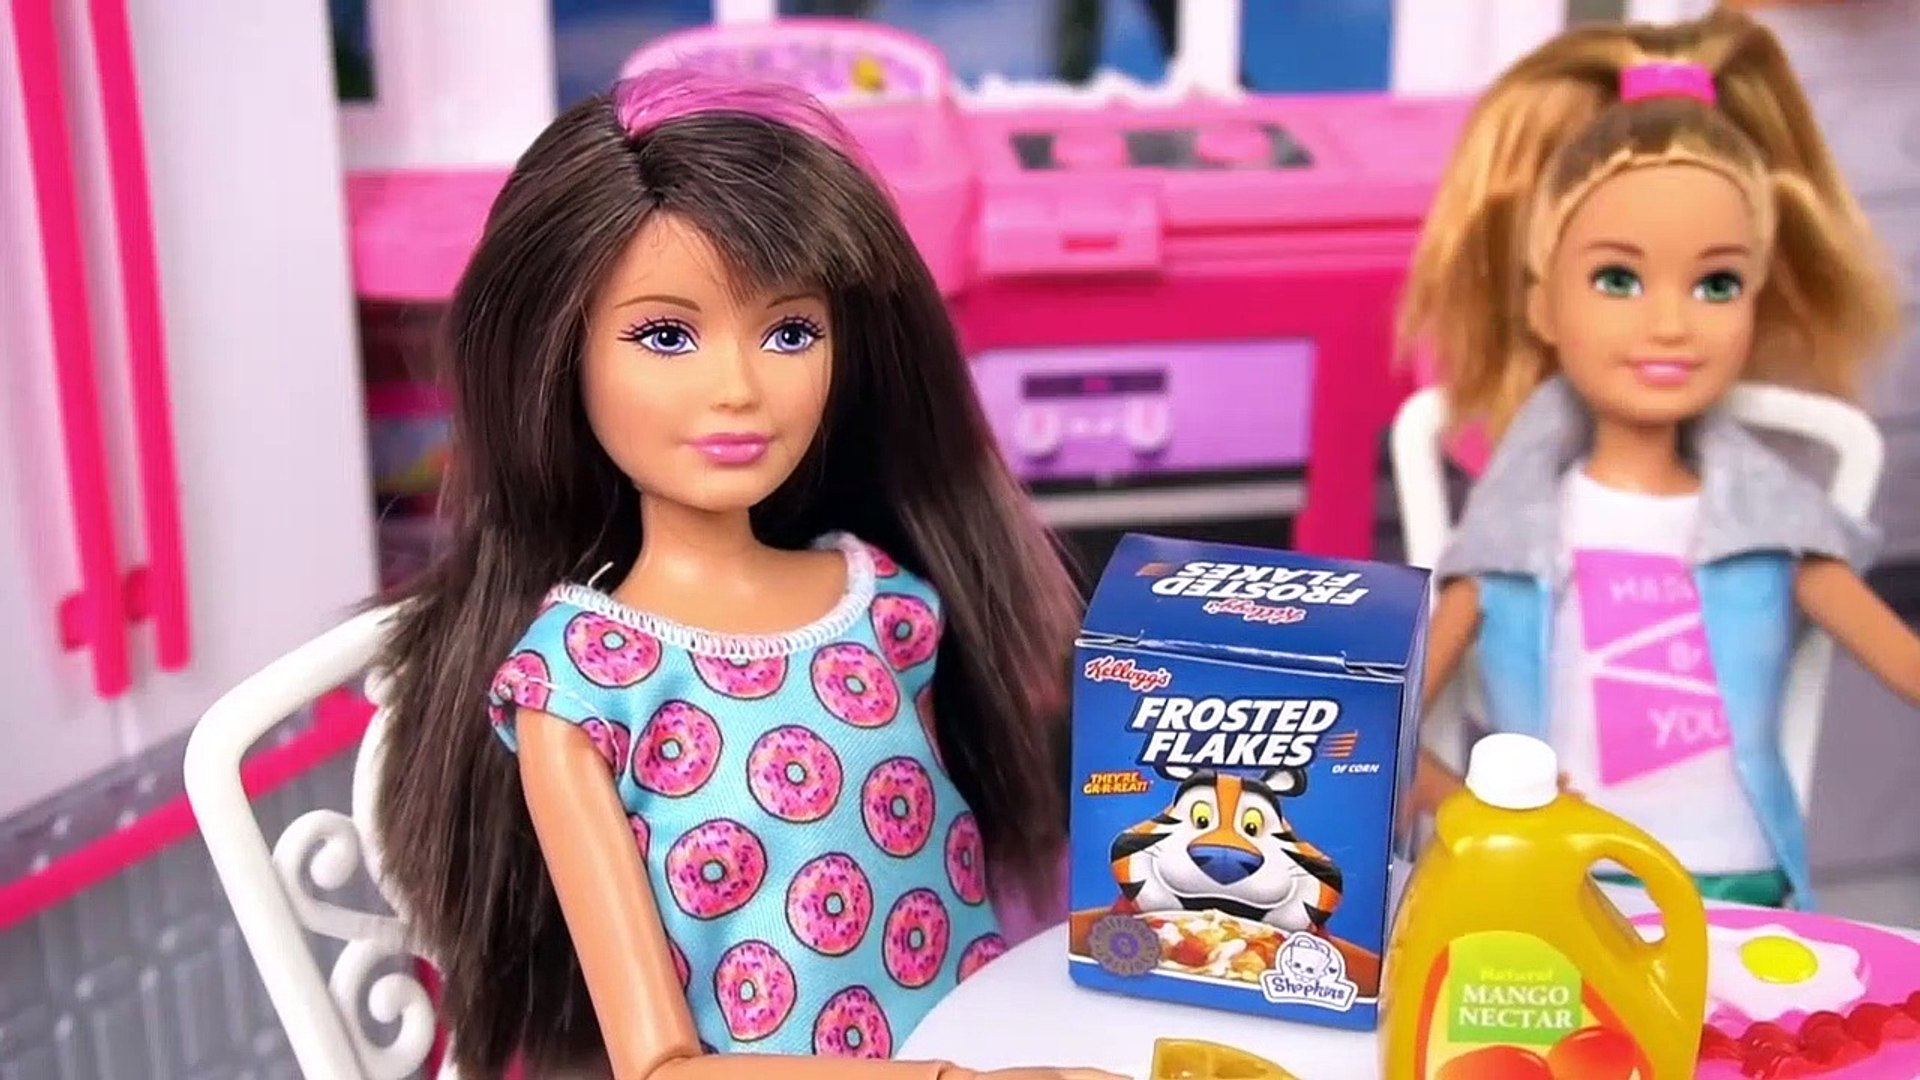 Barbie Chelsea Stacie New School Morning Routine Packing Lunchbox Riding School Bus Video Dailymotion